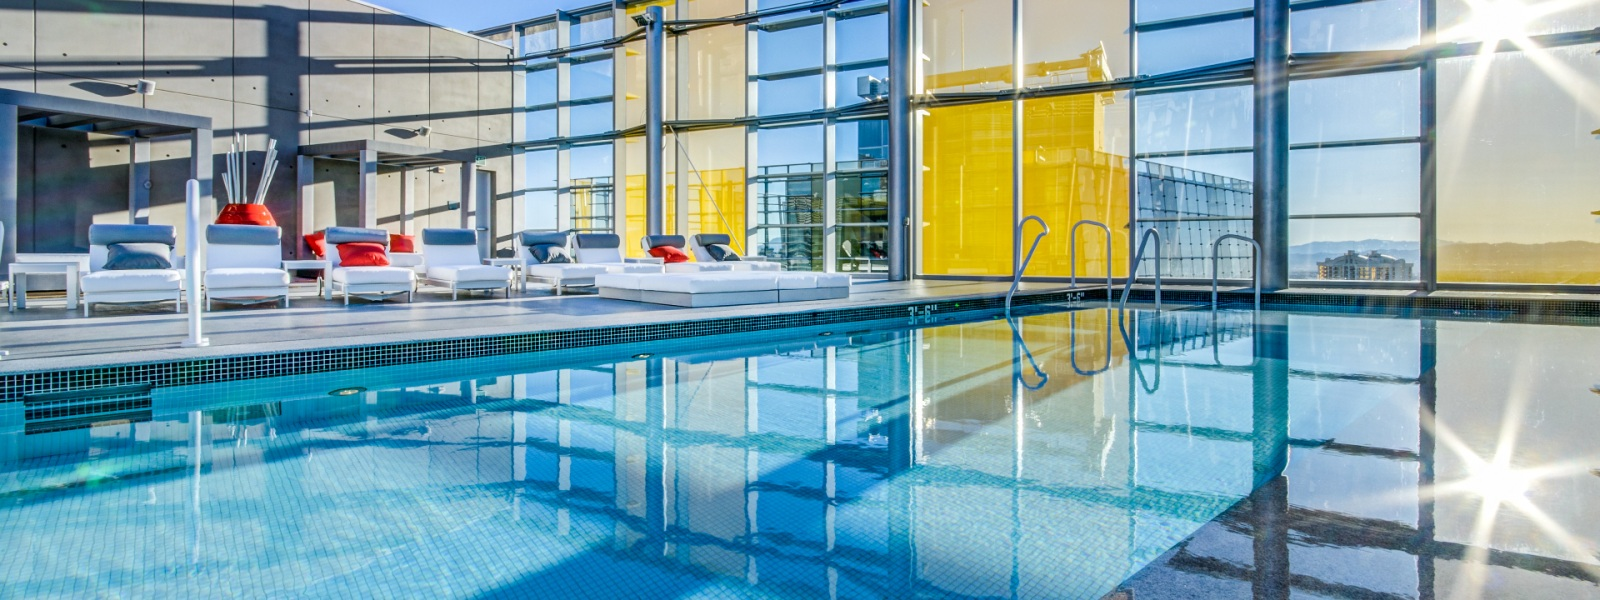 Commercial Pool Service Las Vegas